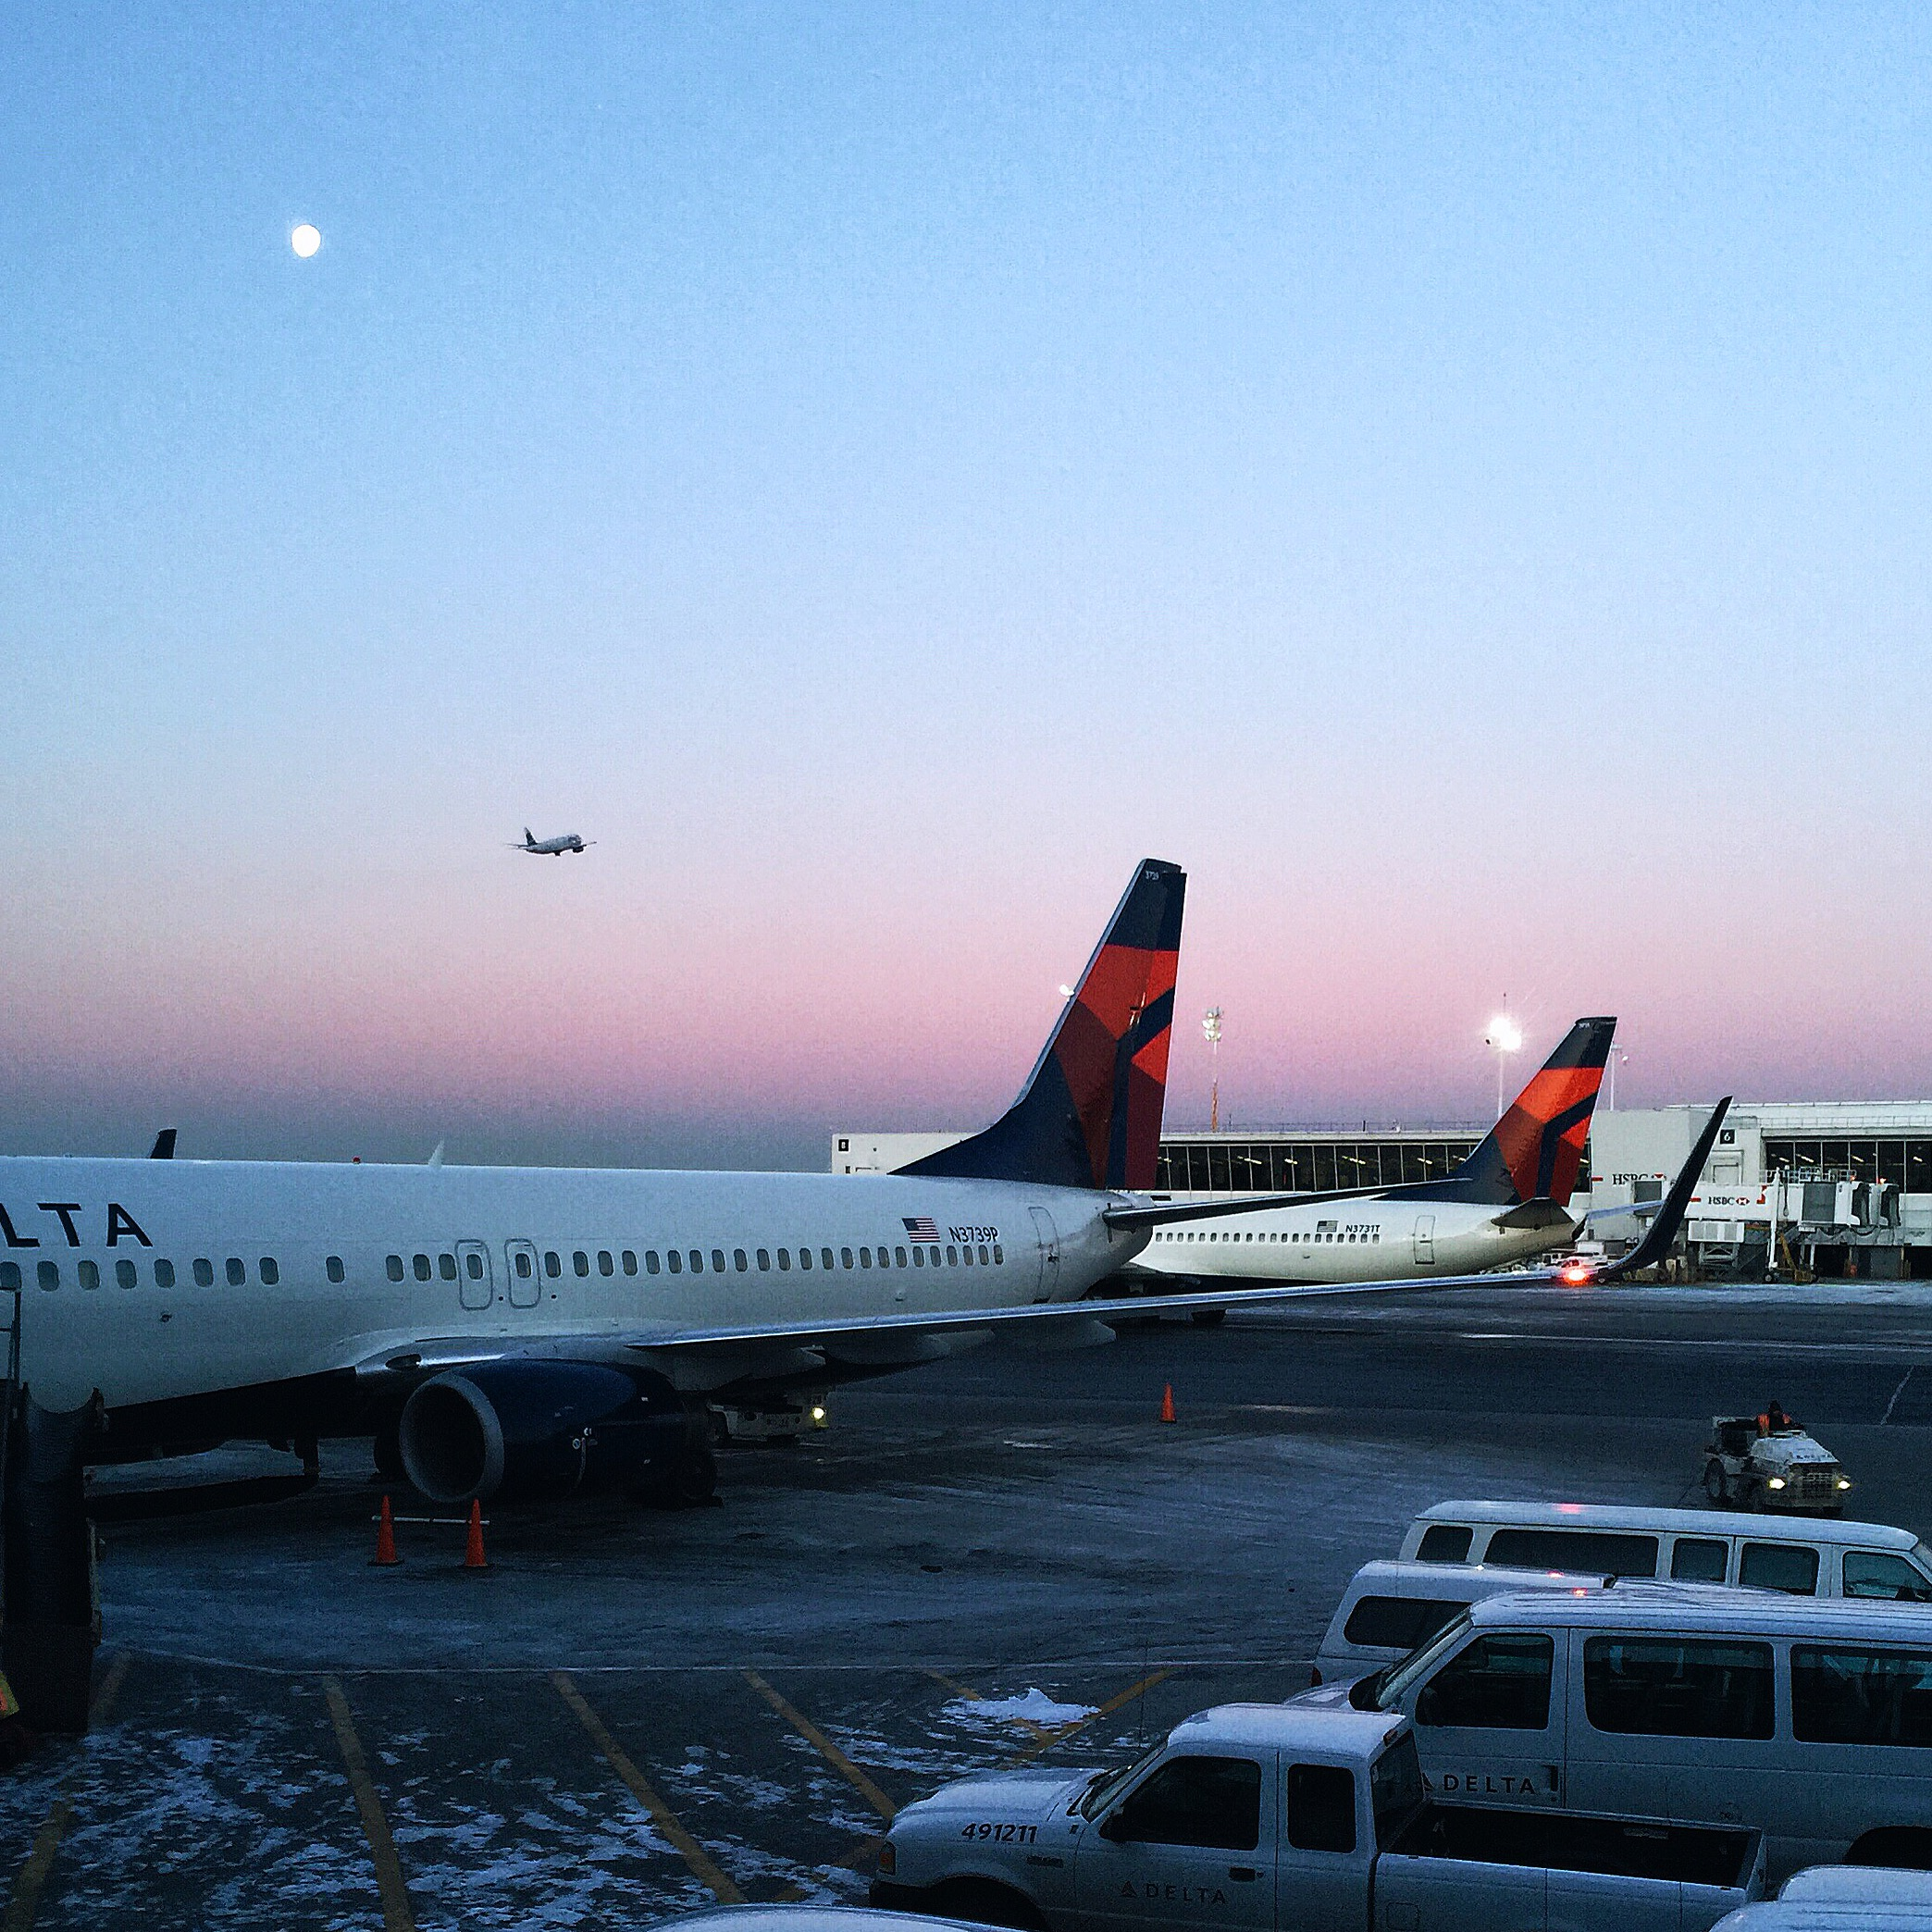 {the sunrise at JFK featuring the moon and a miniature airplane taking off.}